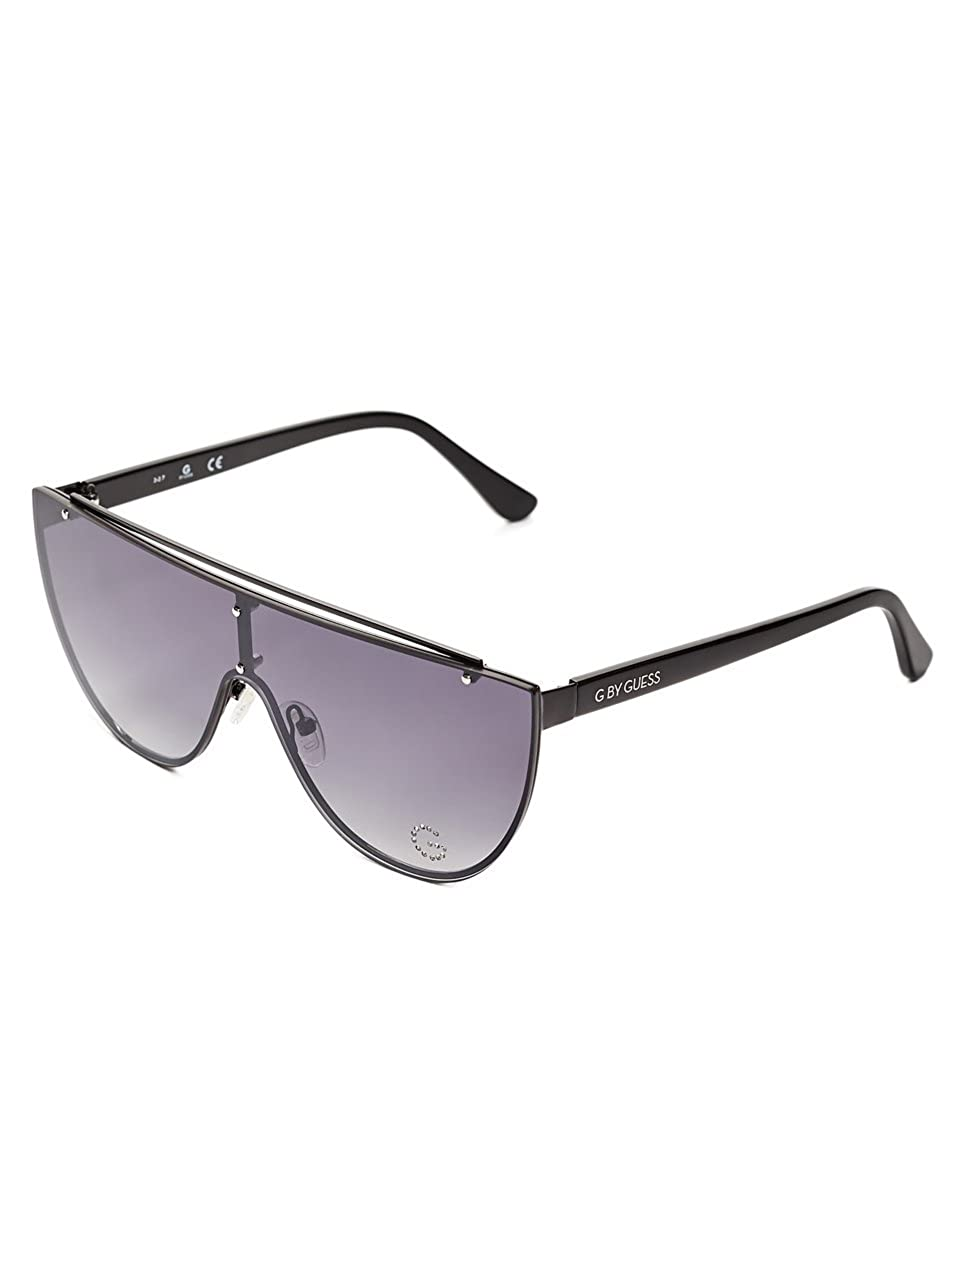 3861792d396af G by GUESS Women s Flat Gradient Shield Sunglasses at Amazon Women s  Clothing store